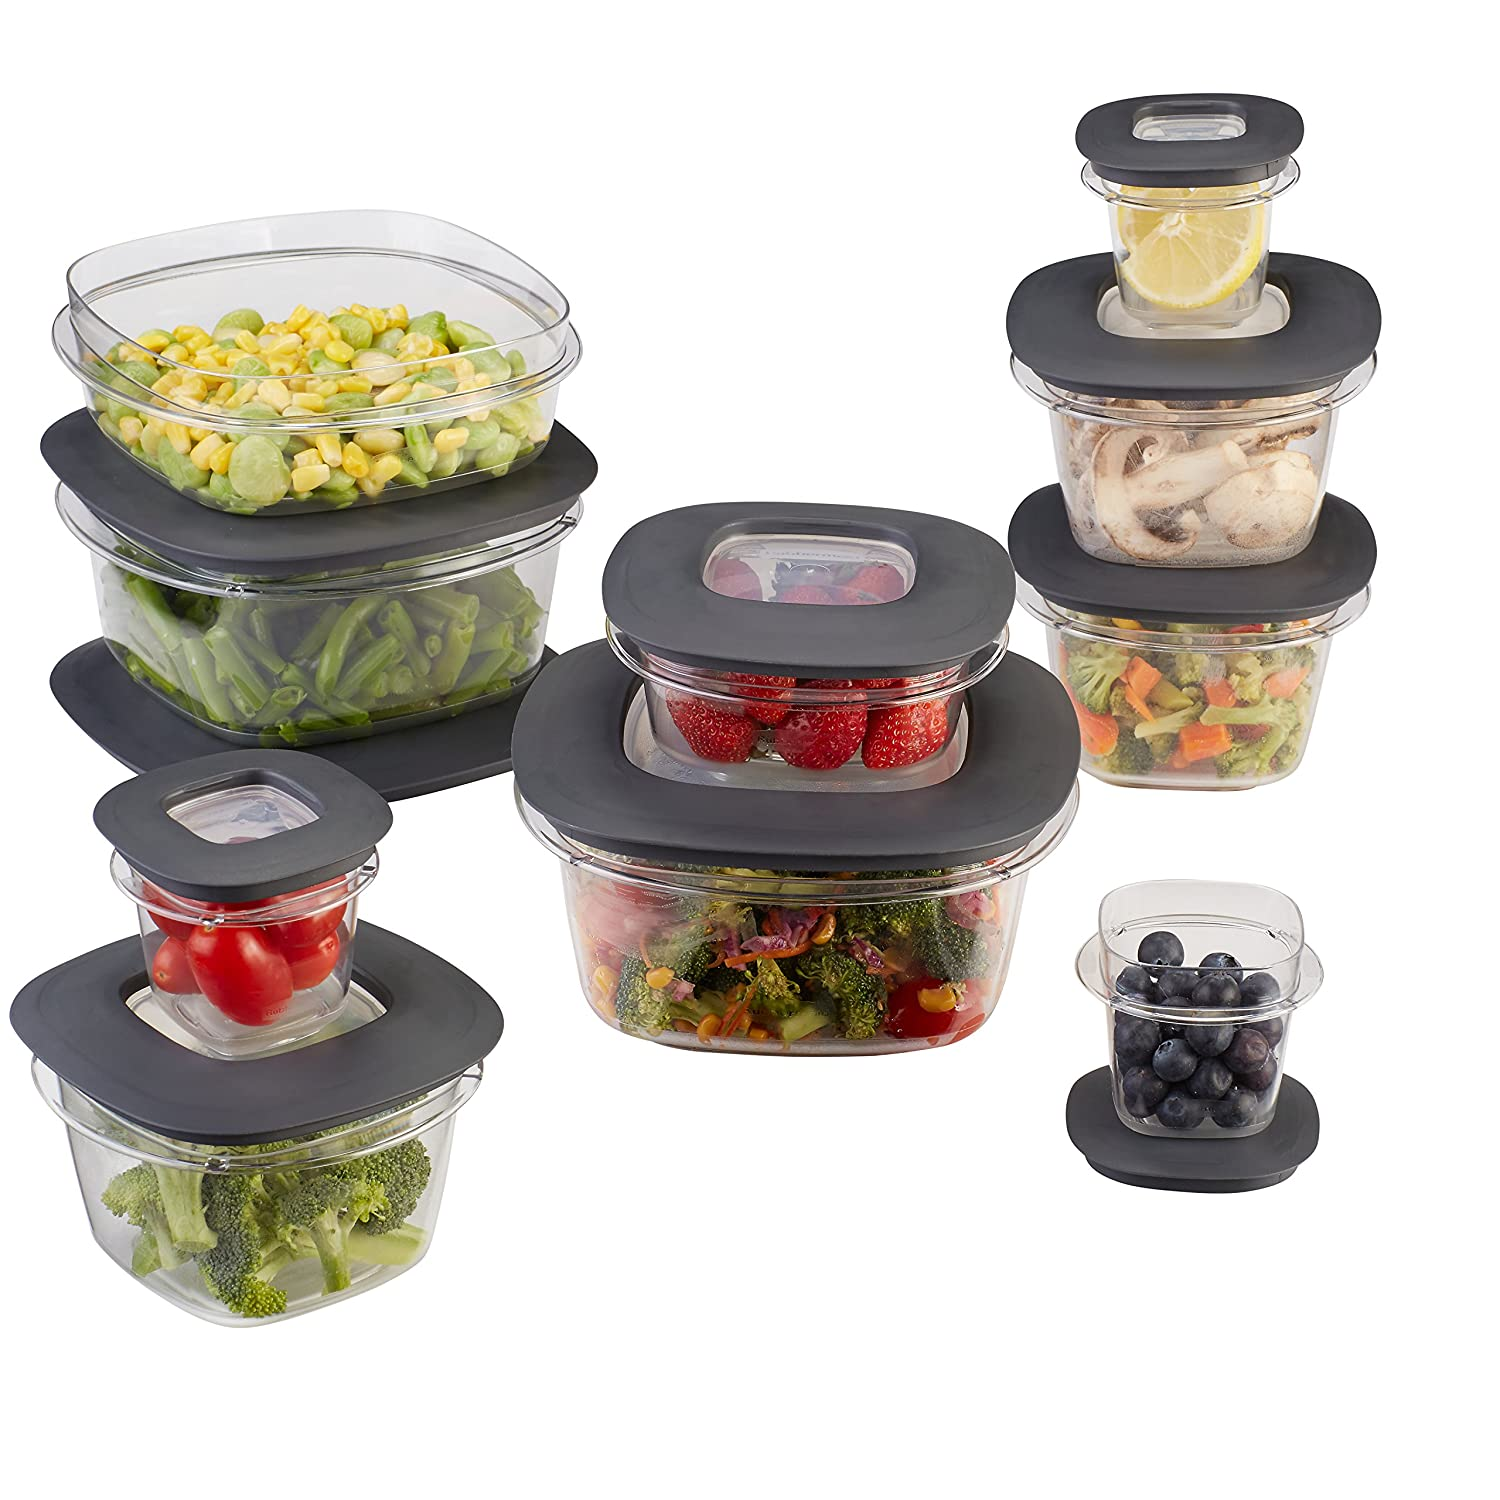 Rubbermaid Premier Easy Find Lids Food Storage Containers, Gray, Set of 20, 1937643